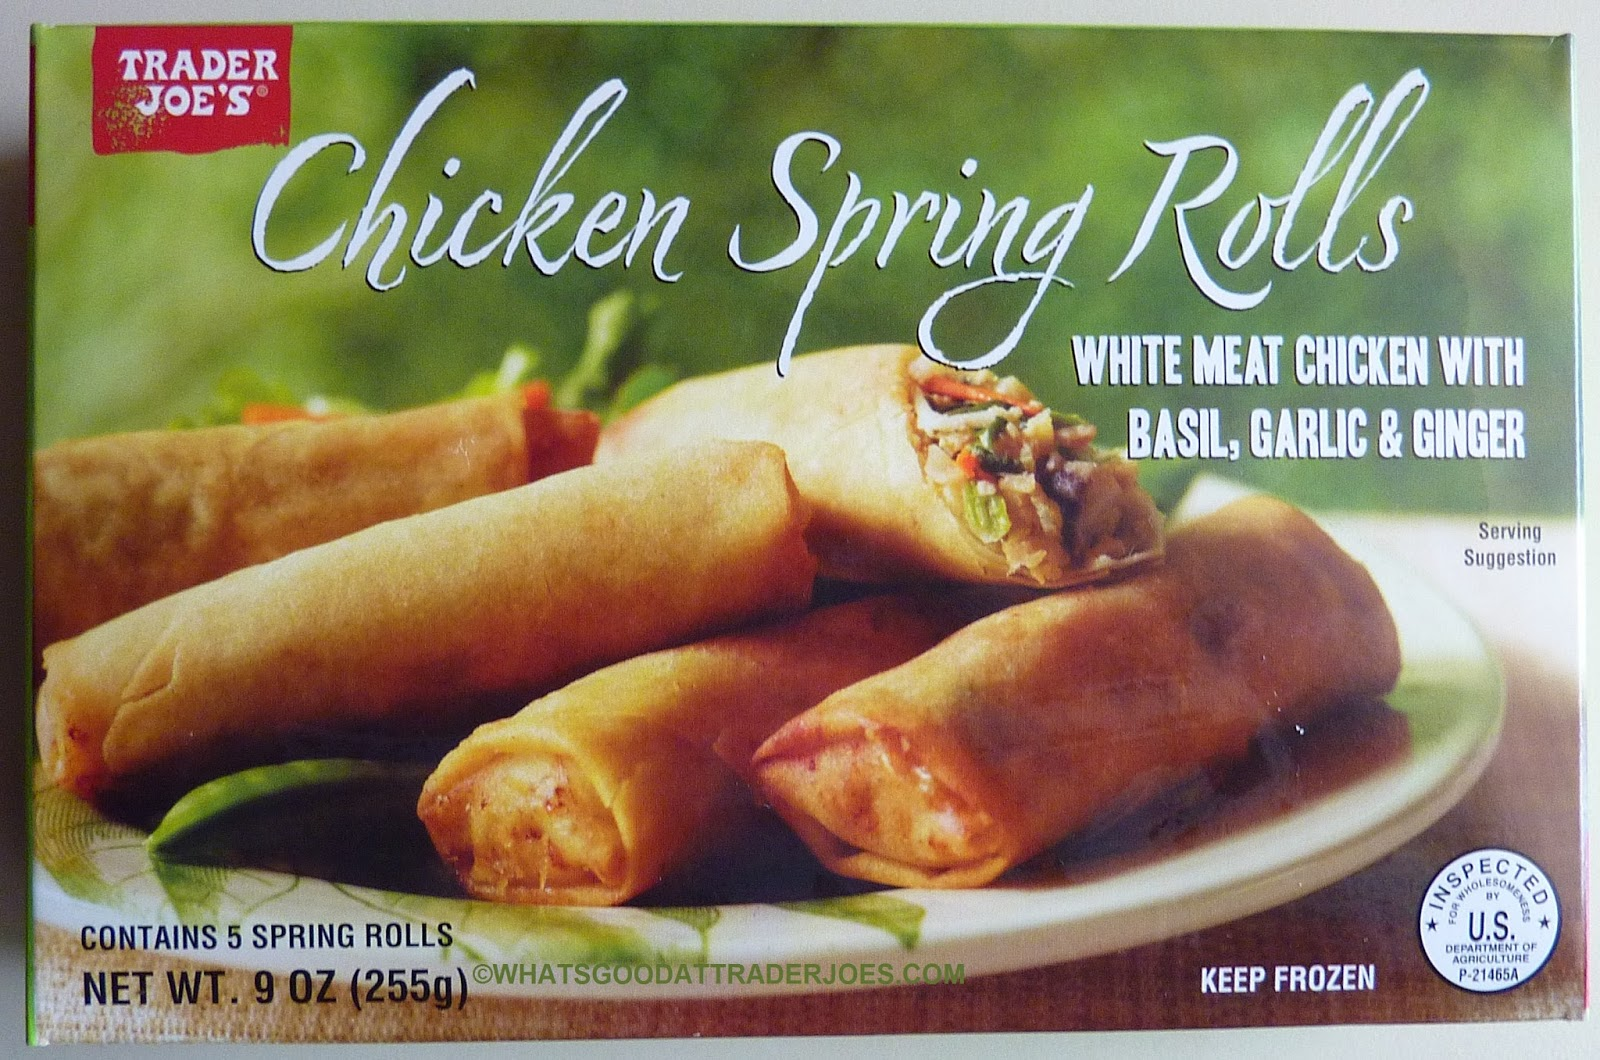 Although Not Quite As Traditionally Murican As Chicken Soup Or Chicken Pot Pie These Chicken Spring Rolls Are New To Tj S And Review Worthy So Let S Take